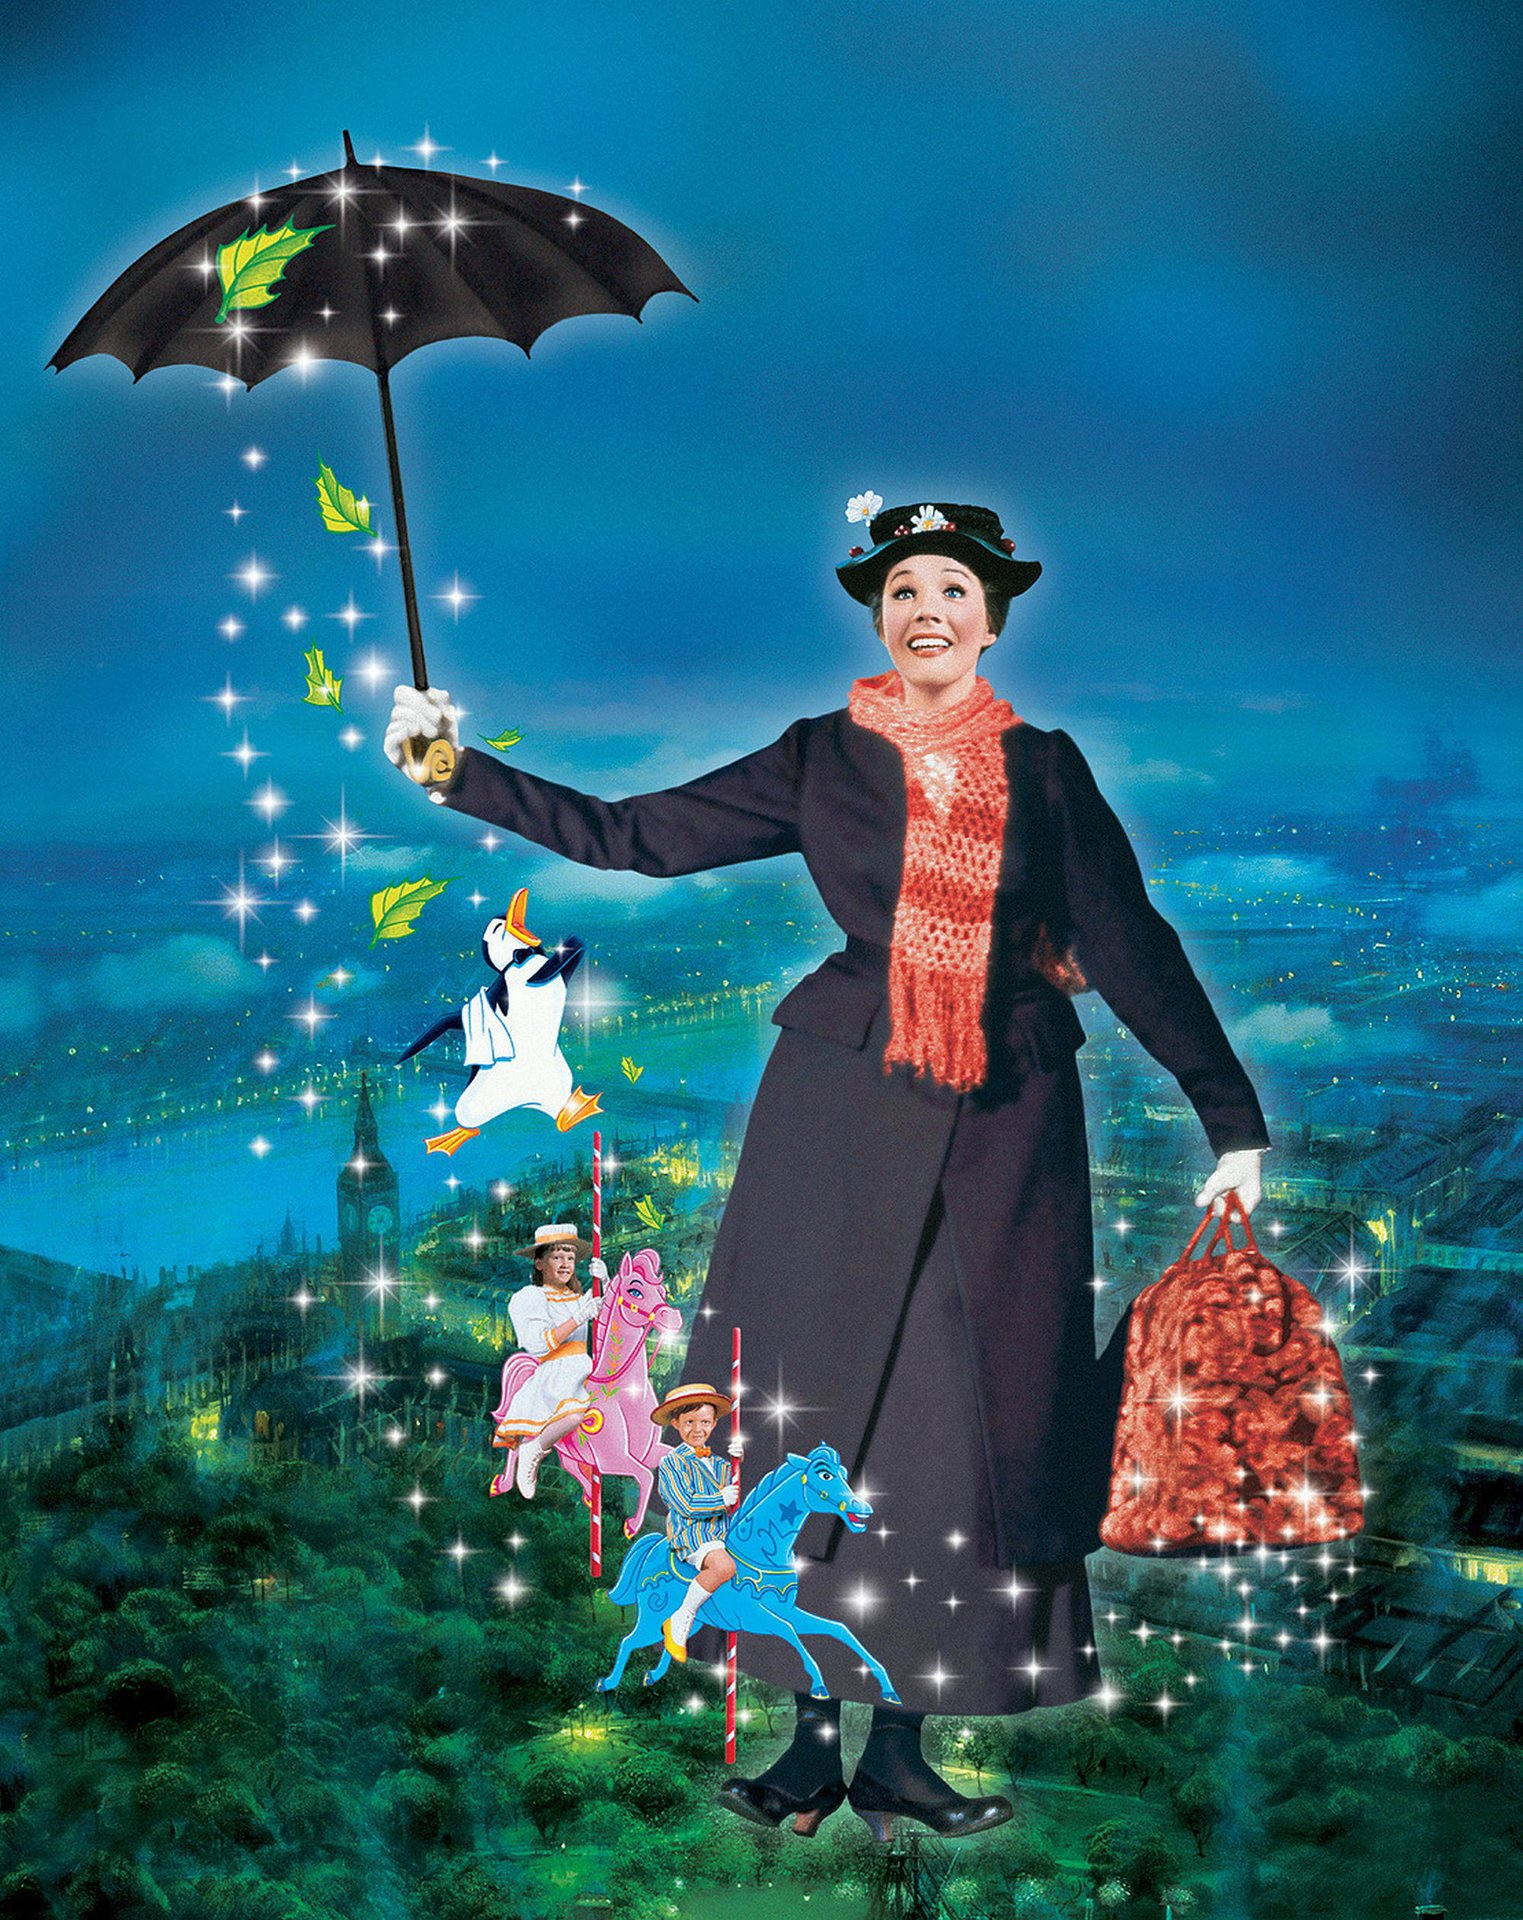 merry poppins